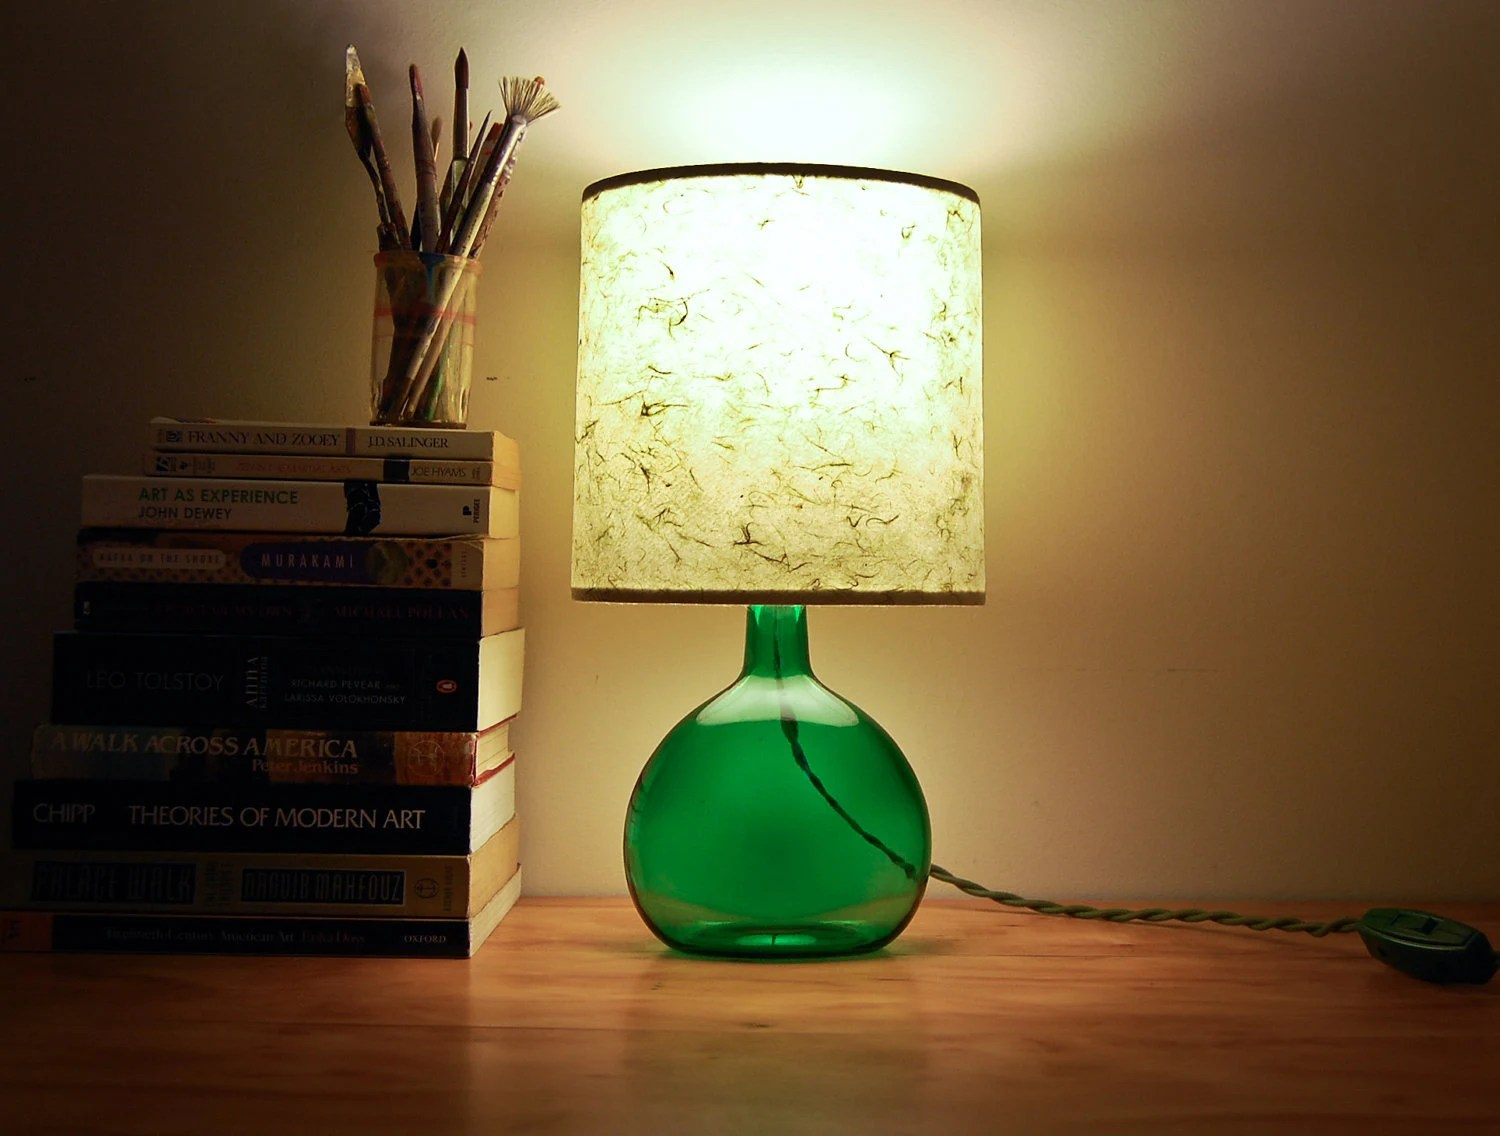 Iu0027m Particularily Obsessed With Lamps Made By Share Studios. Isnu0027t This  Vintage Green Glass Bottle Lamp The Most Beautiful Thing Youu0027ve Ever Seen?